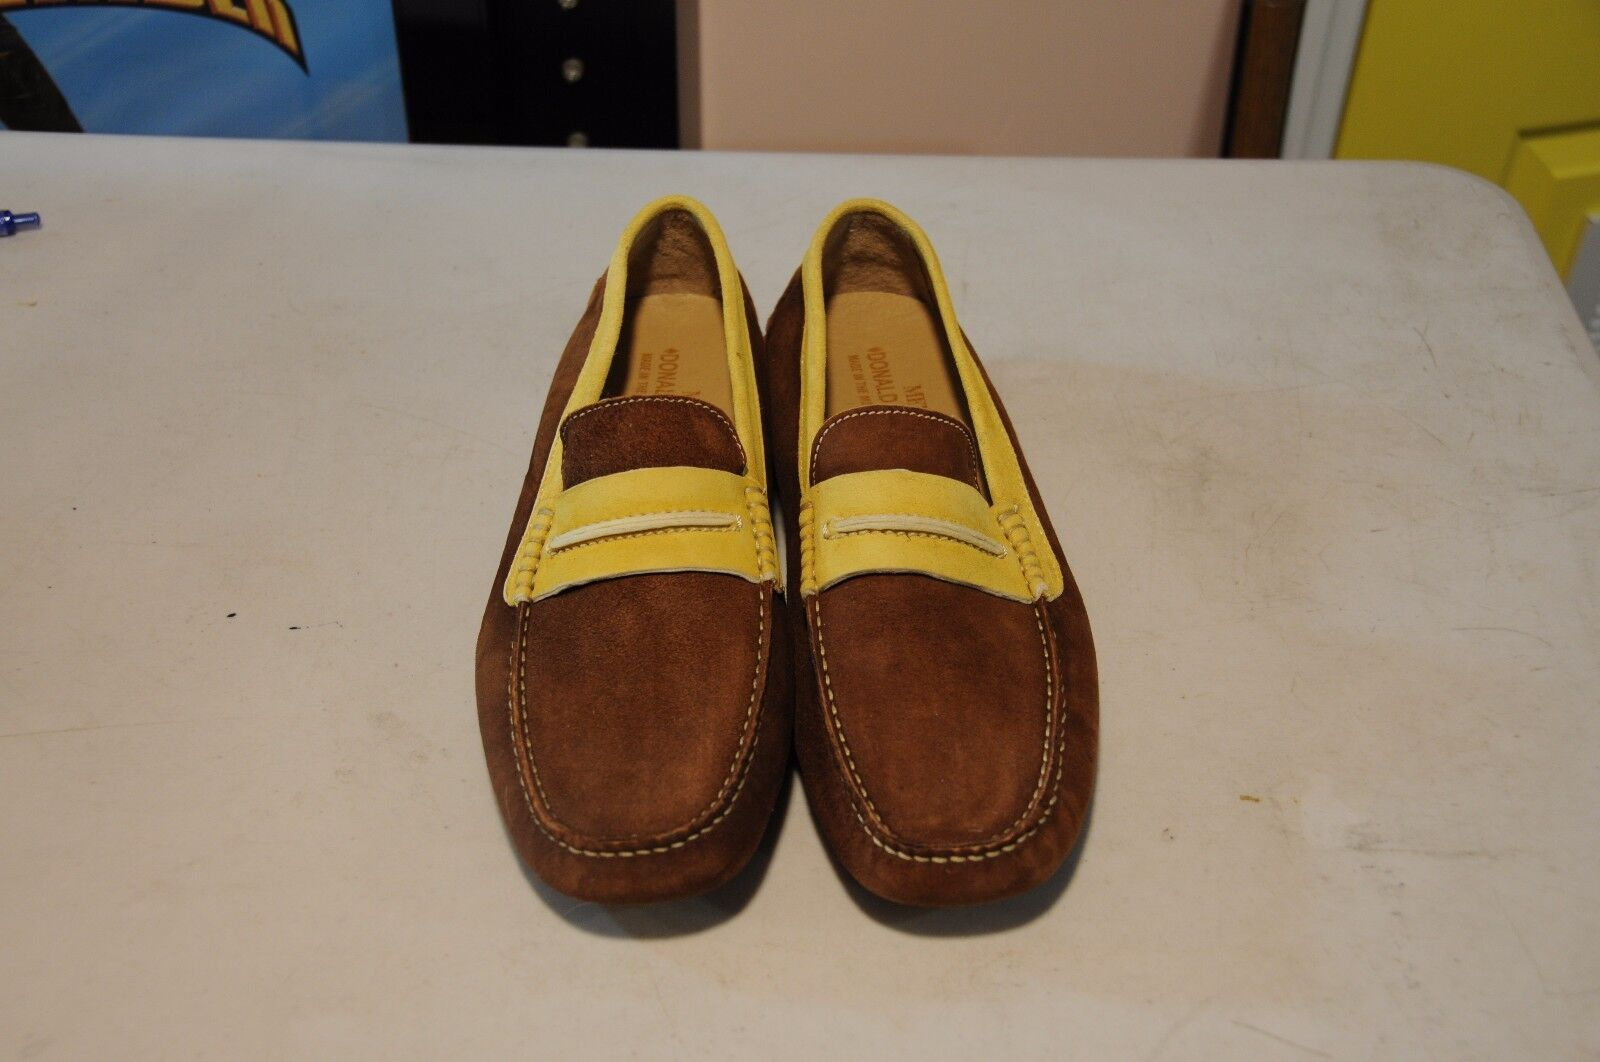 Donald J Pliner Men's Sz 9 M Brown Yellow Suede Driving Loafers shoes